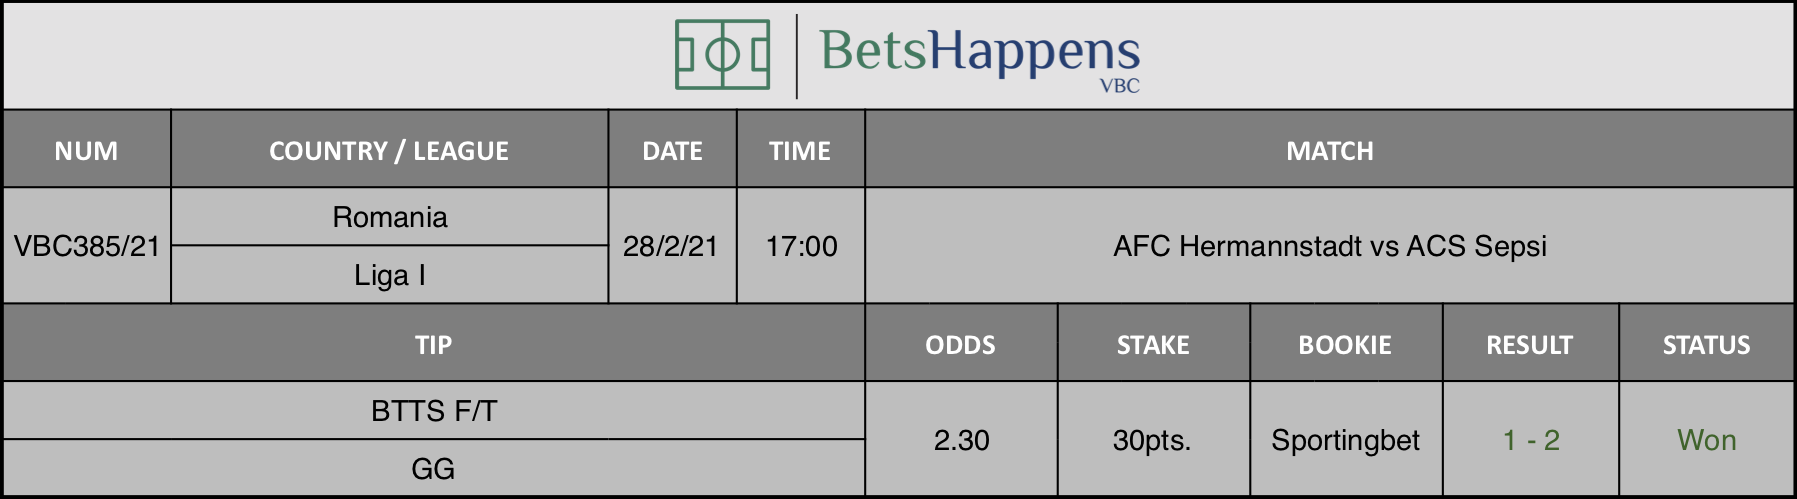 Results of our tip for the AFC Hermannstadt vs ACS Sepsi match where BTTS F/T  GG is recommended.